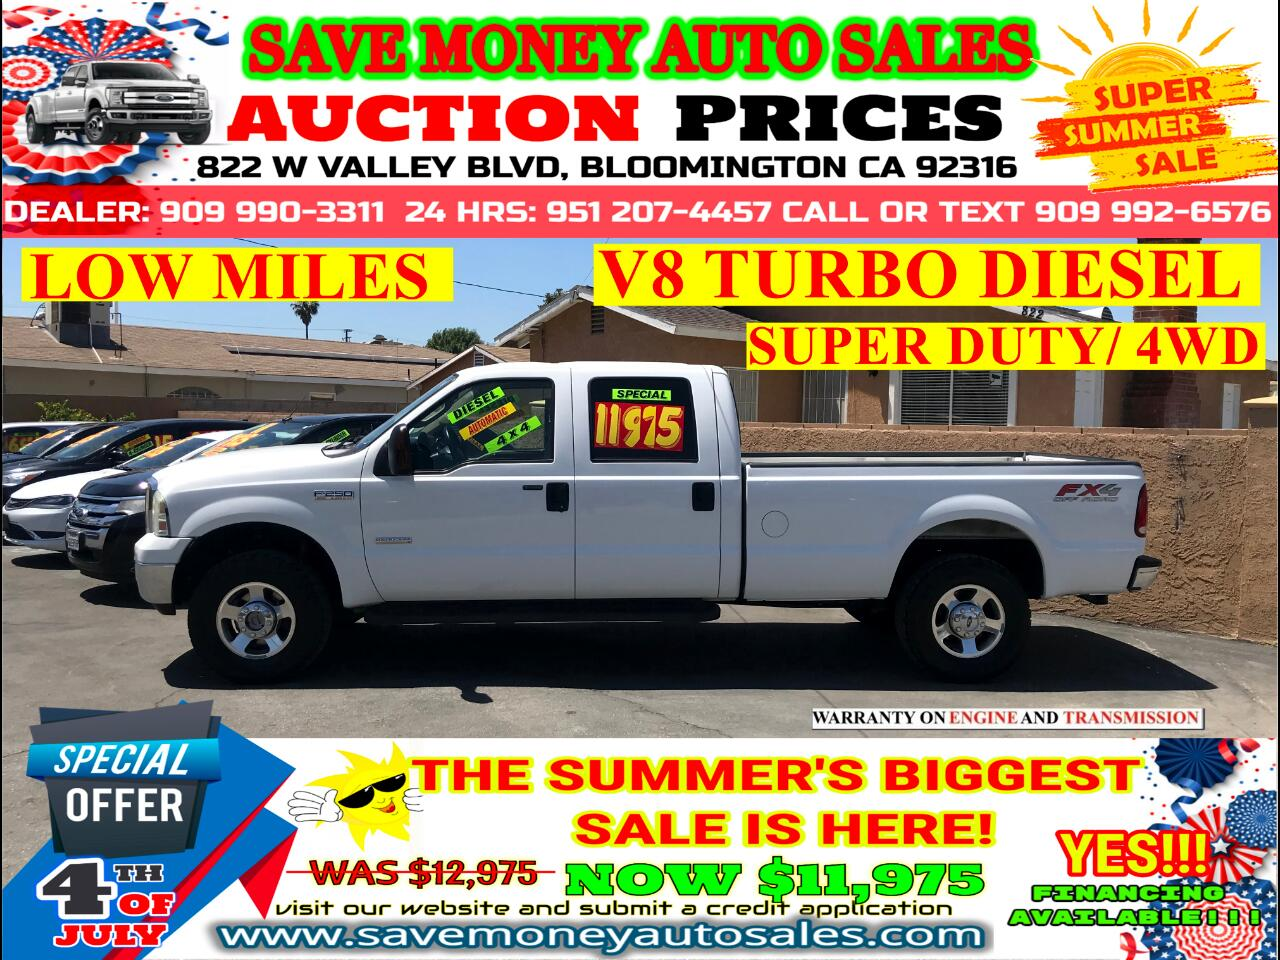 2005 Ford F-250 SD SUPER DUTY> EXTRA CLEAN> LOW MILES> TOWING PKG